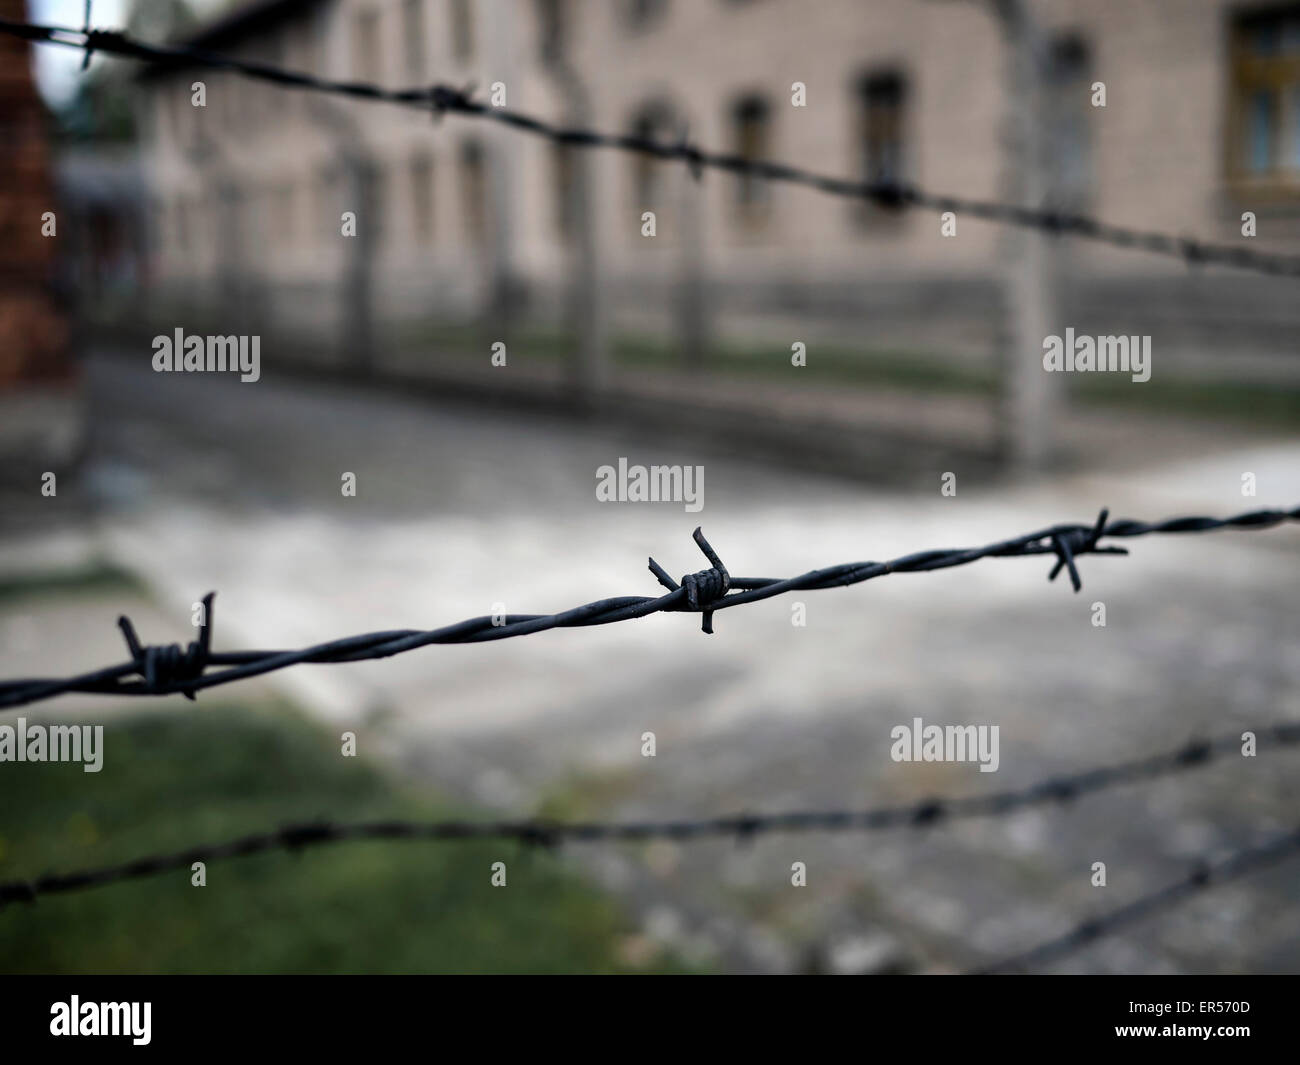 Prison Camp Barbed Wire Stock Photos & Prison Camp Barbed Wire Stock ...